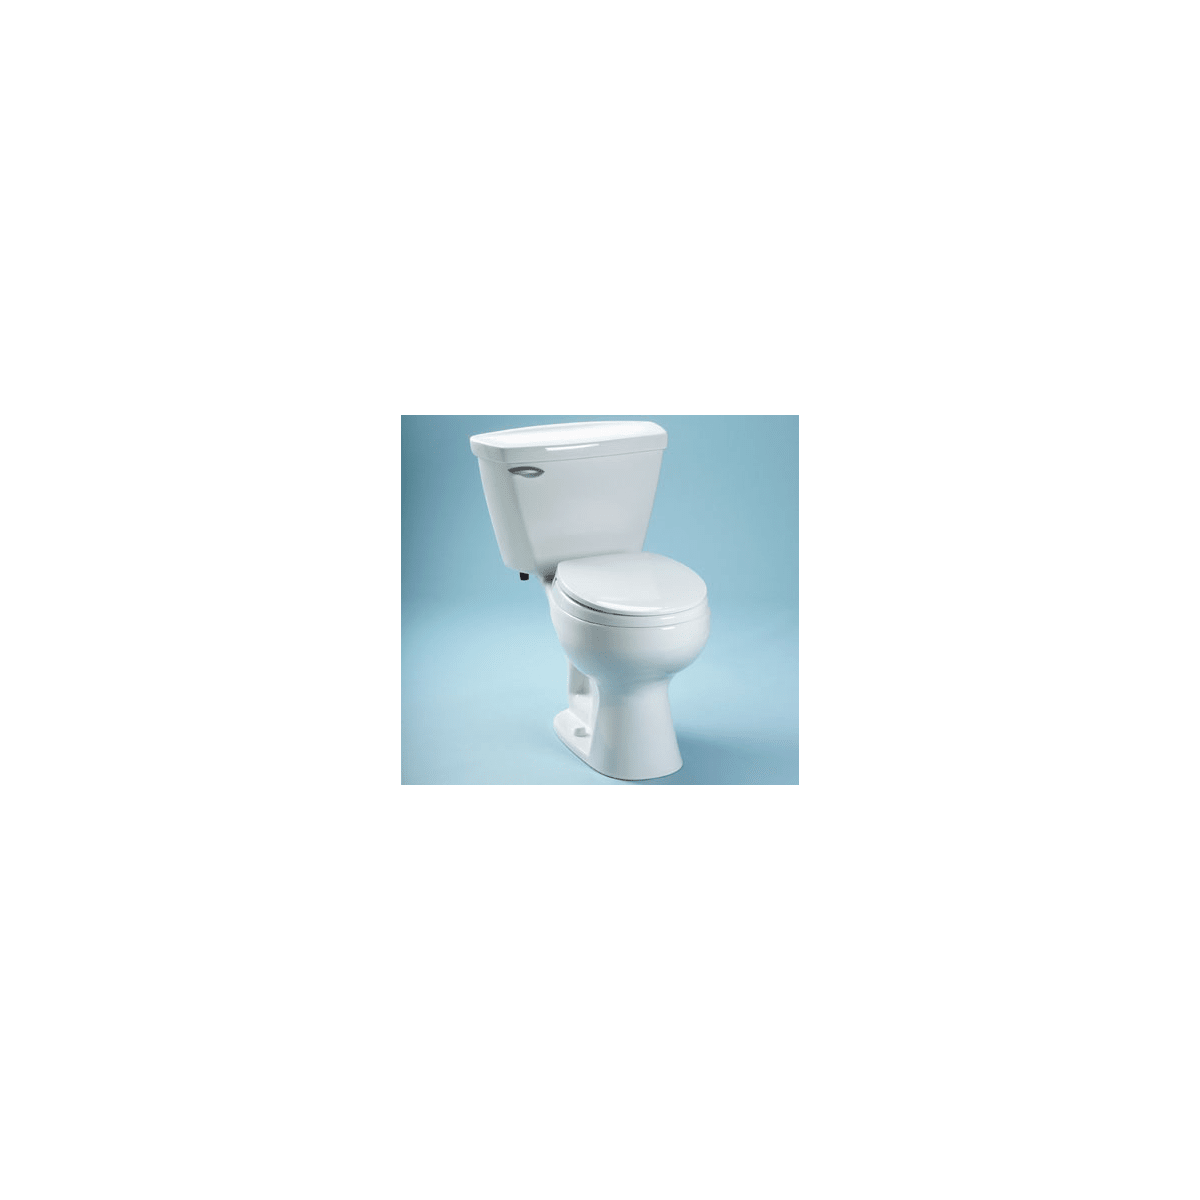 Toto CST733F#03 Bone 1.6GPF Two-Piece Round Toilet - FaucetDirect.com